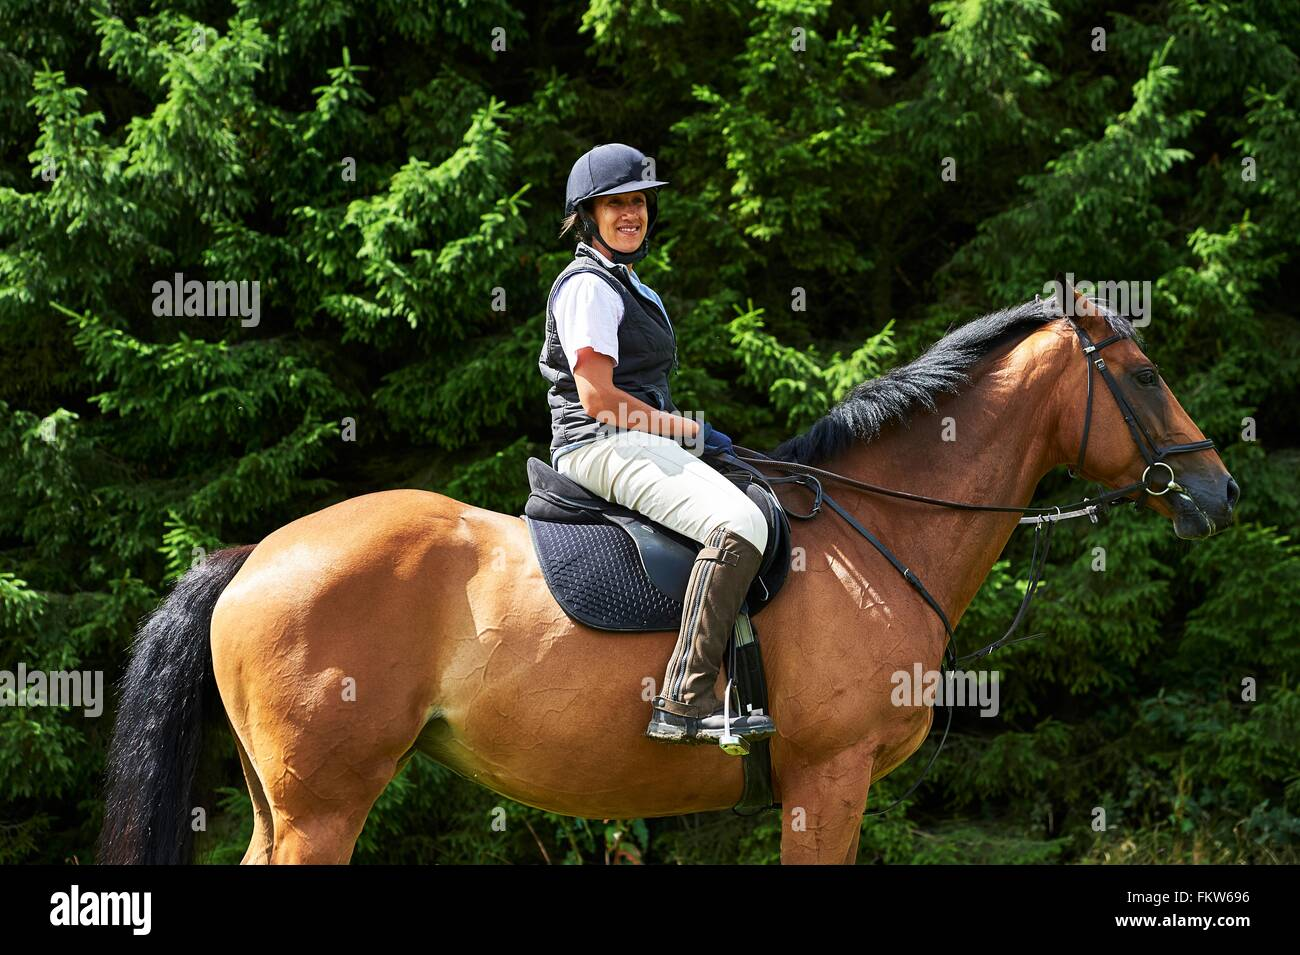 Side view of mature woman on horseback wearing riding hat and boots looking at camera smiling - Stock Image